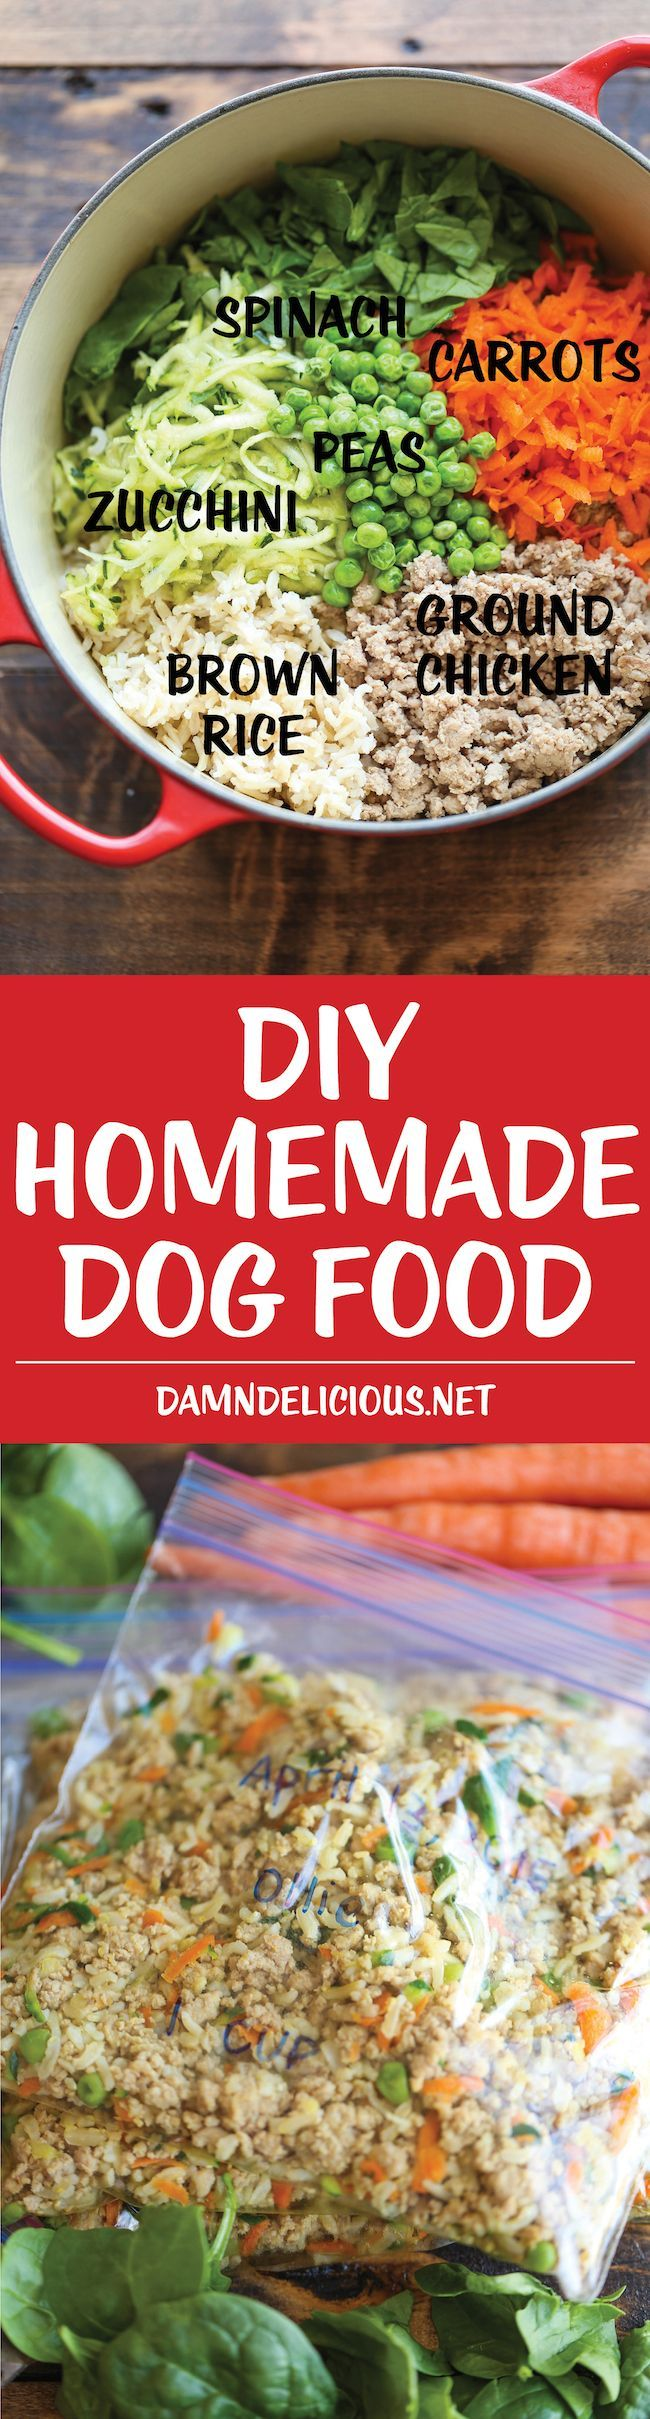 DIY Homemade Dog Food - Keep your dog healthy and fit with this easy peasy homemade recipe - it's cheaper than store-bought and chockfull of fresh veggies! http://www.turmericfordogs.com/blog